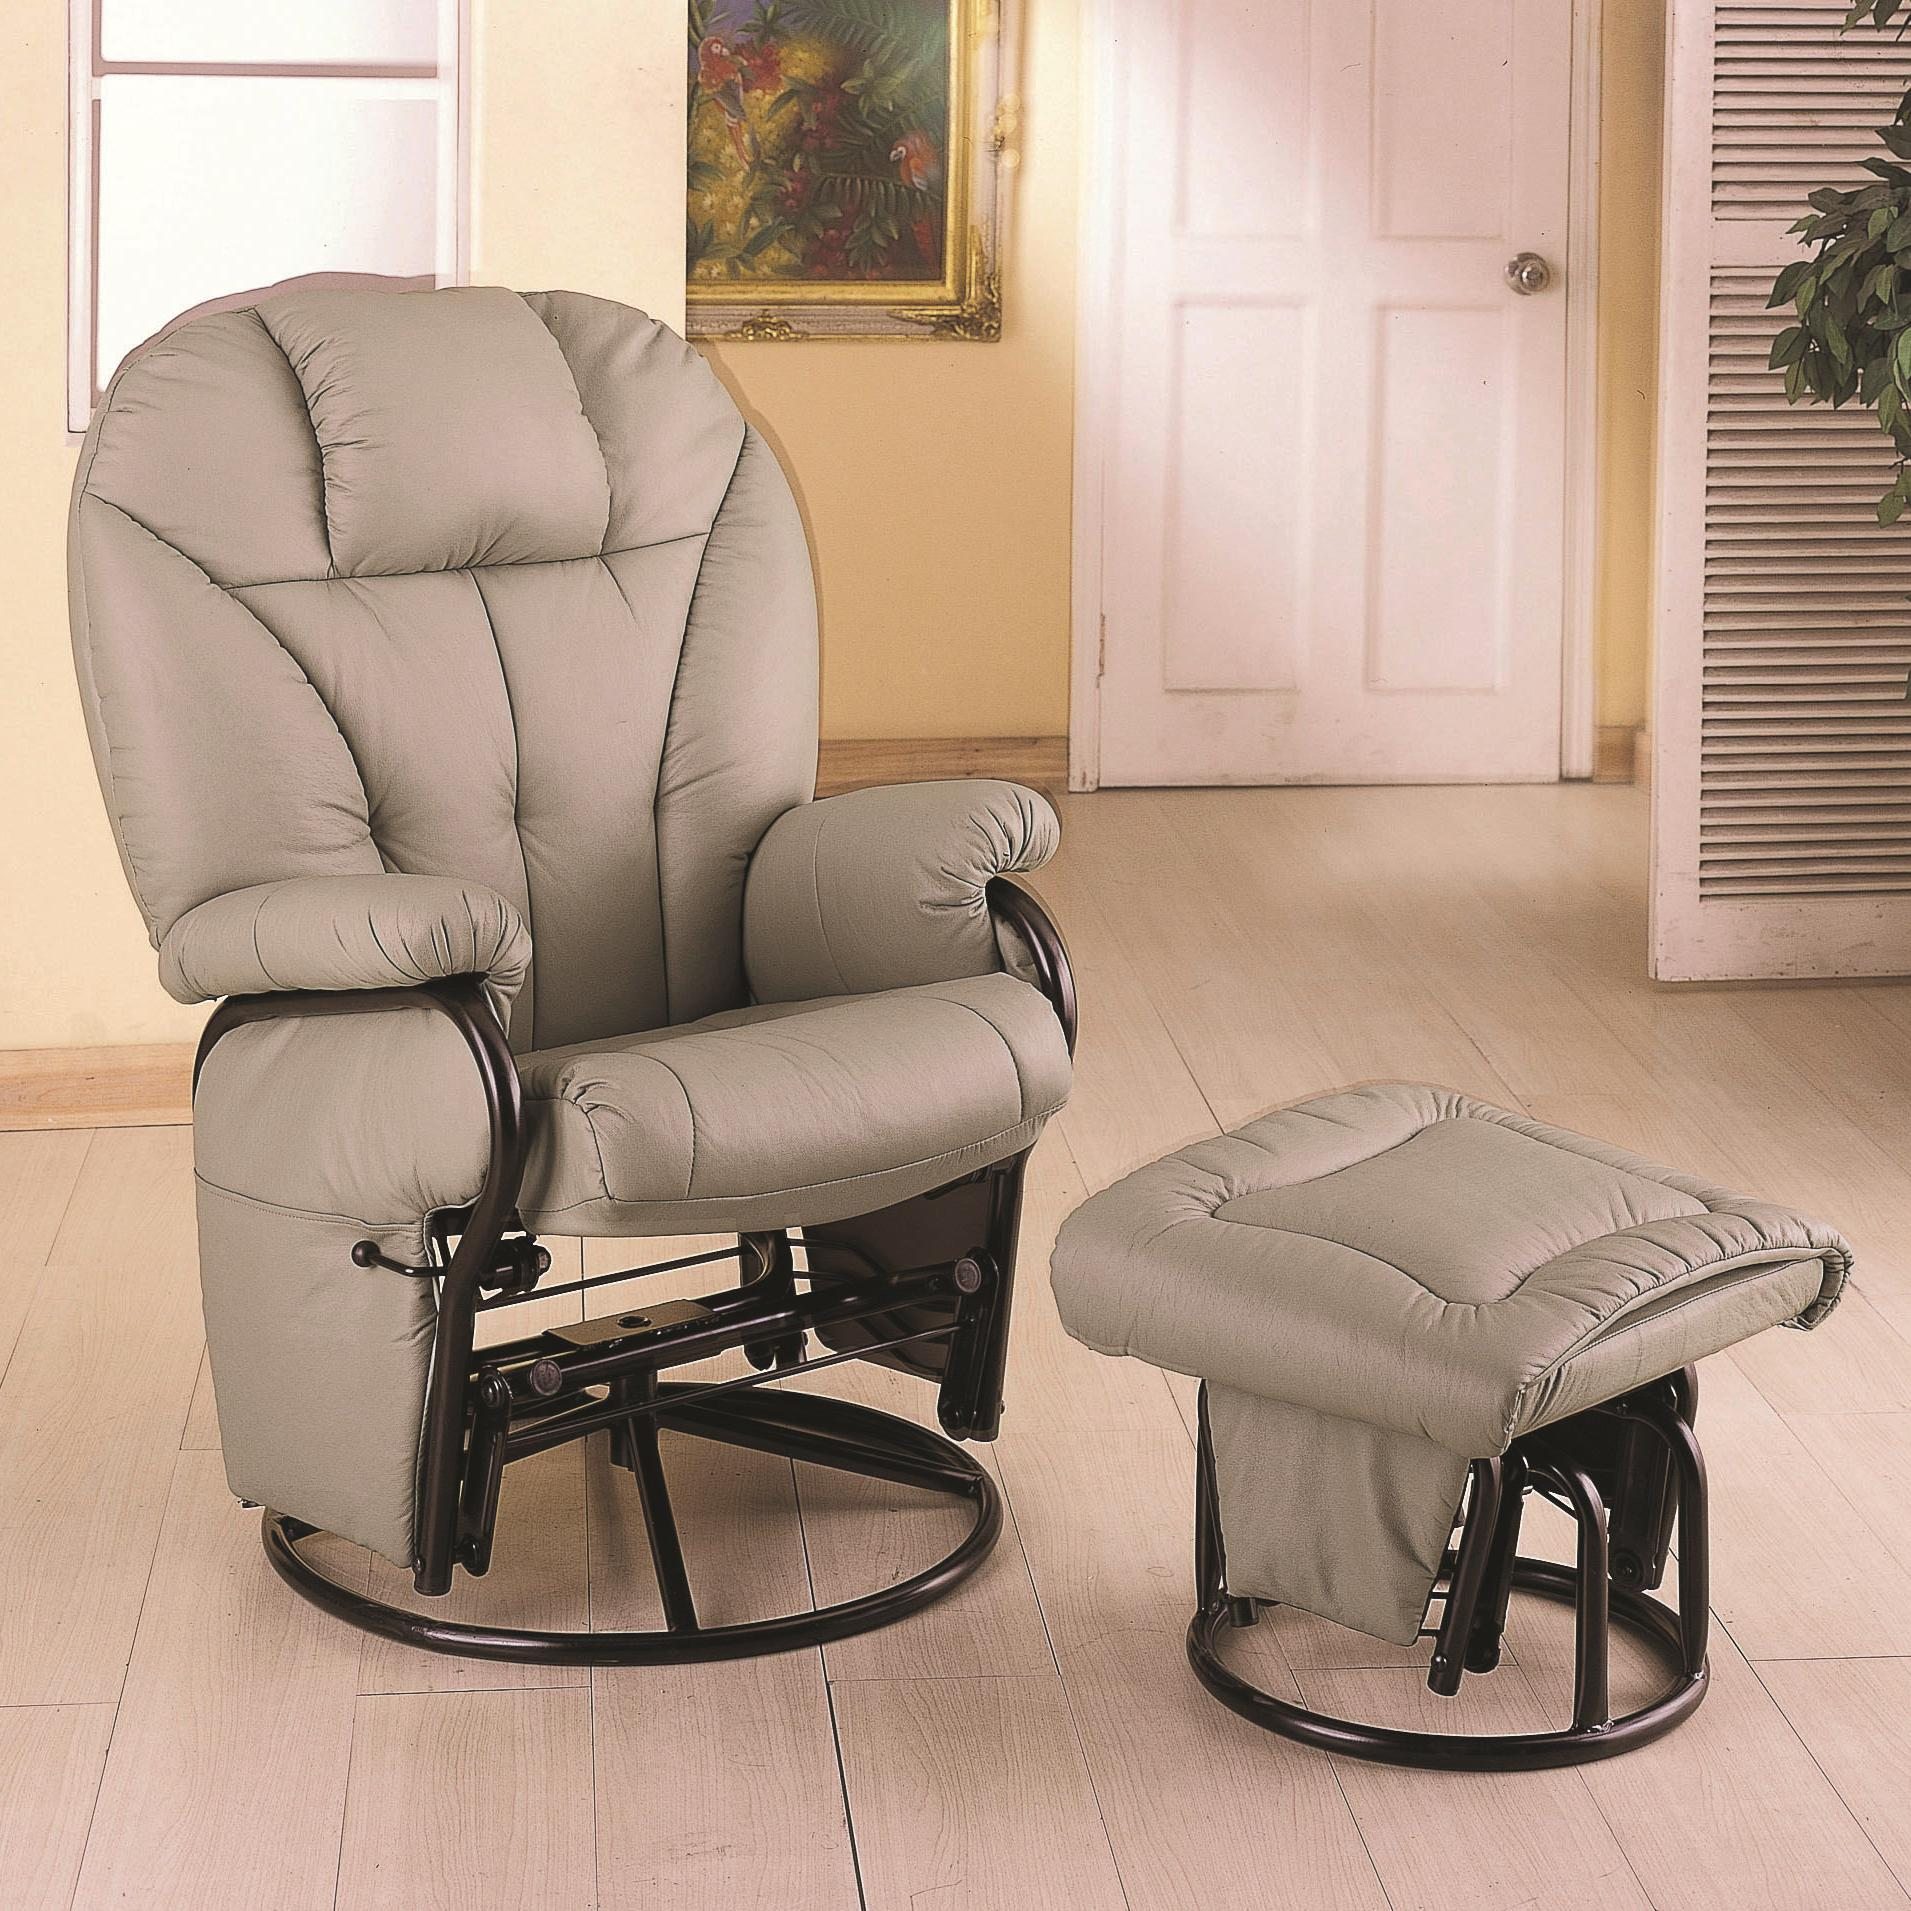 Coaster Recliners with Ottomans Recliner with Ottoman - Item Number: 2645